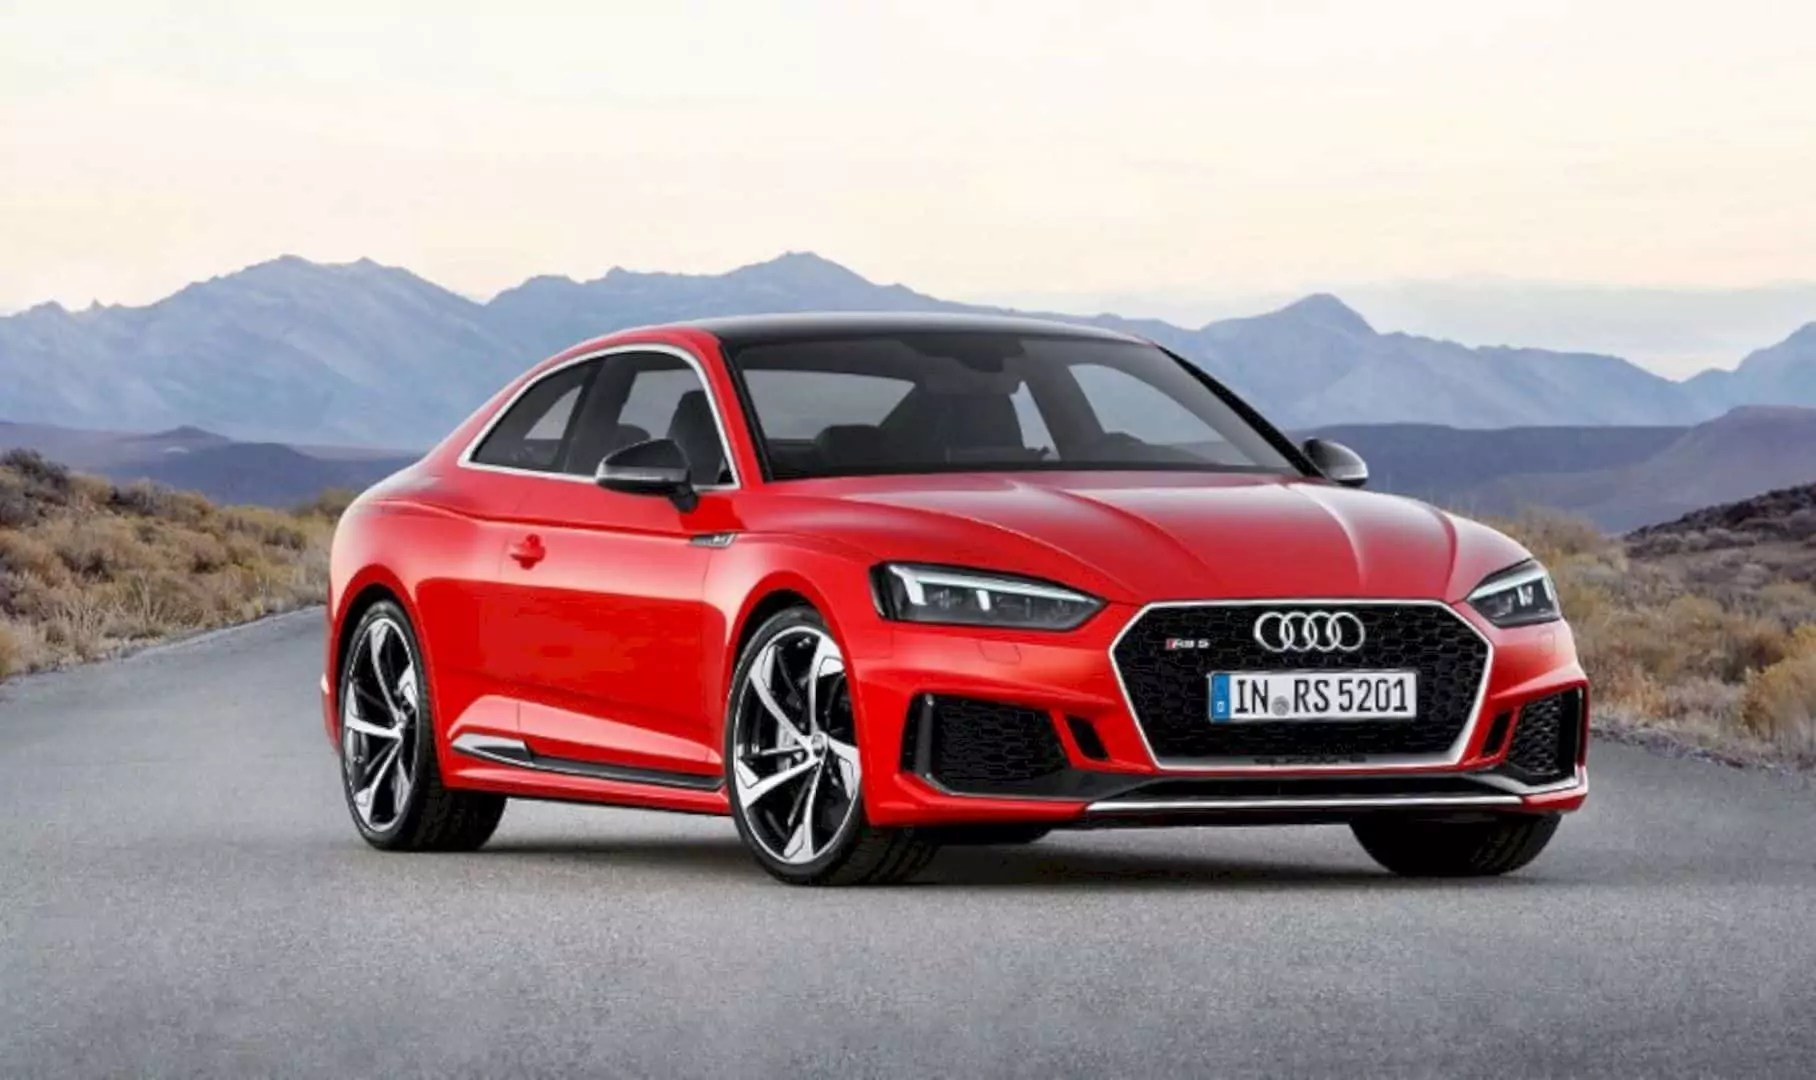 2018 Audi Rs5 Coupe 6